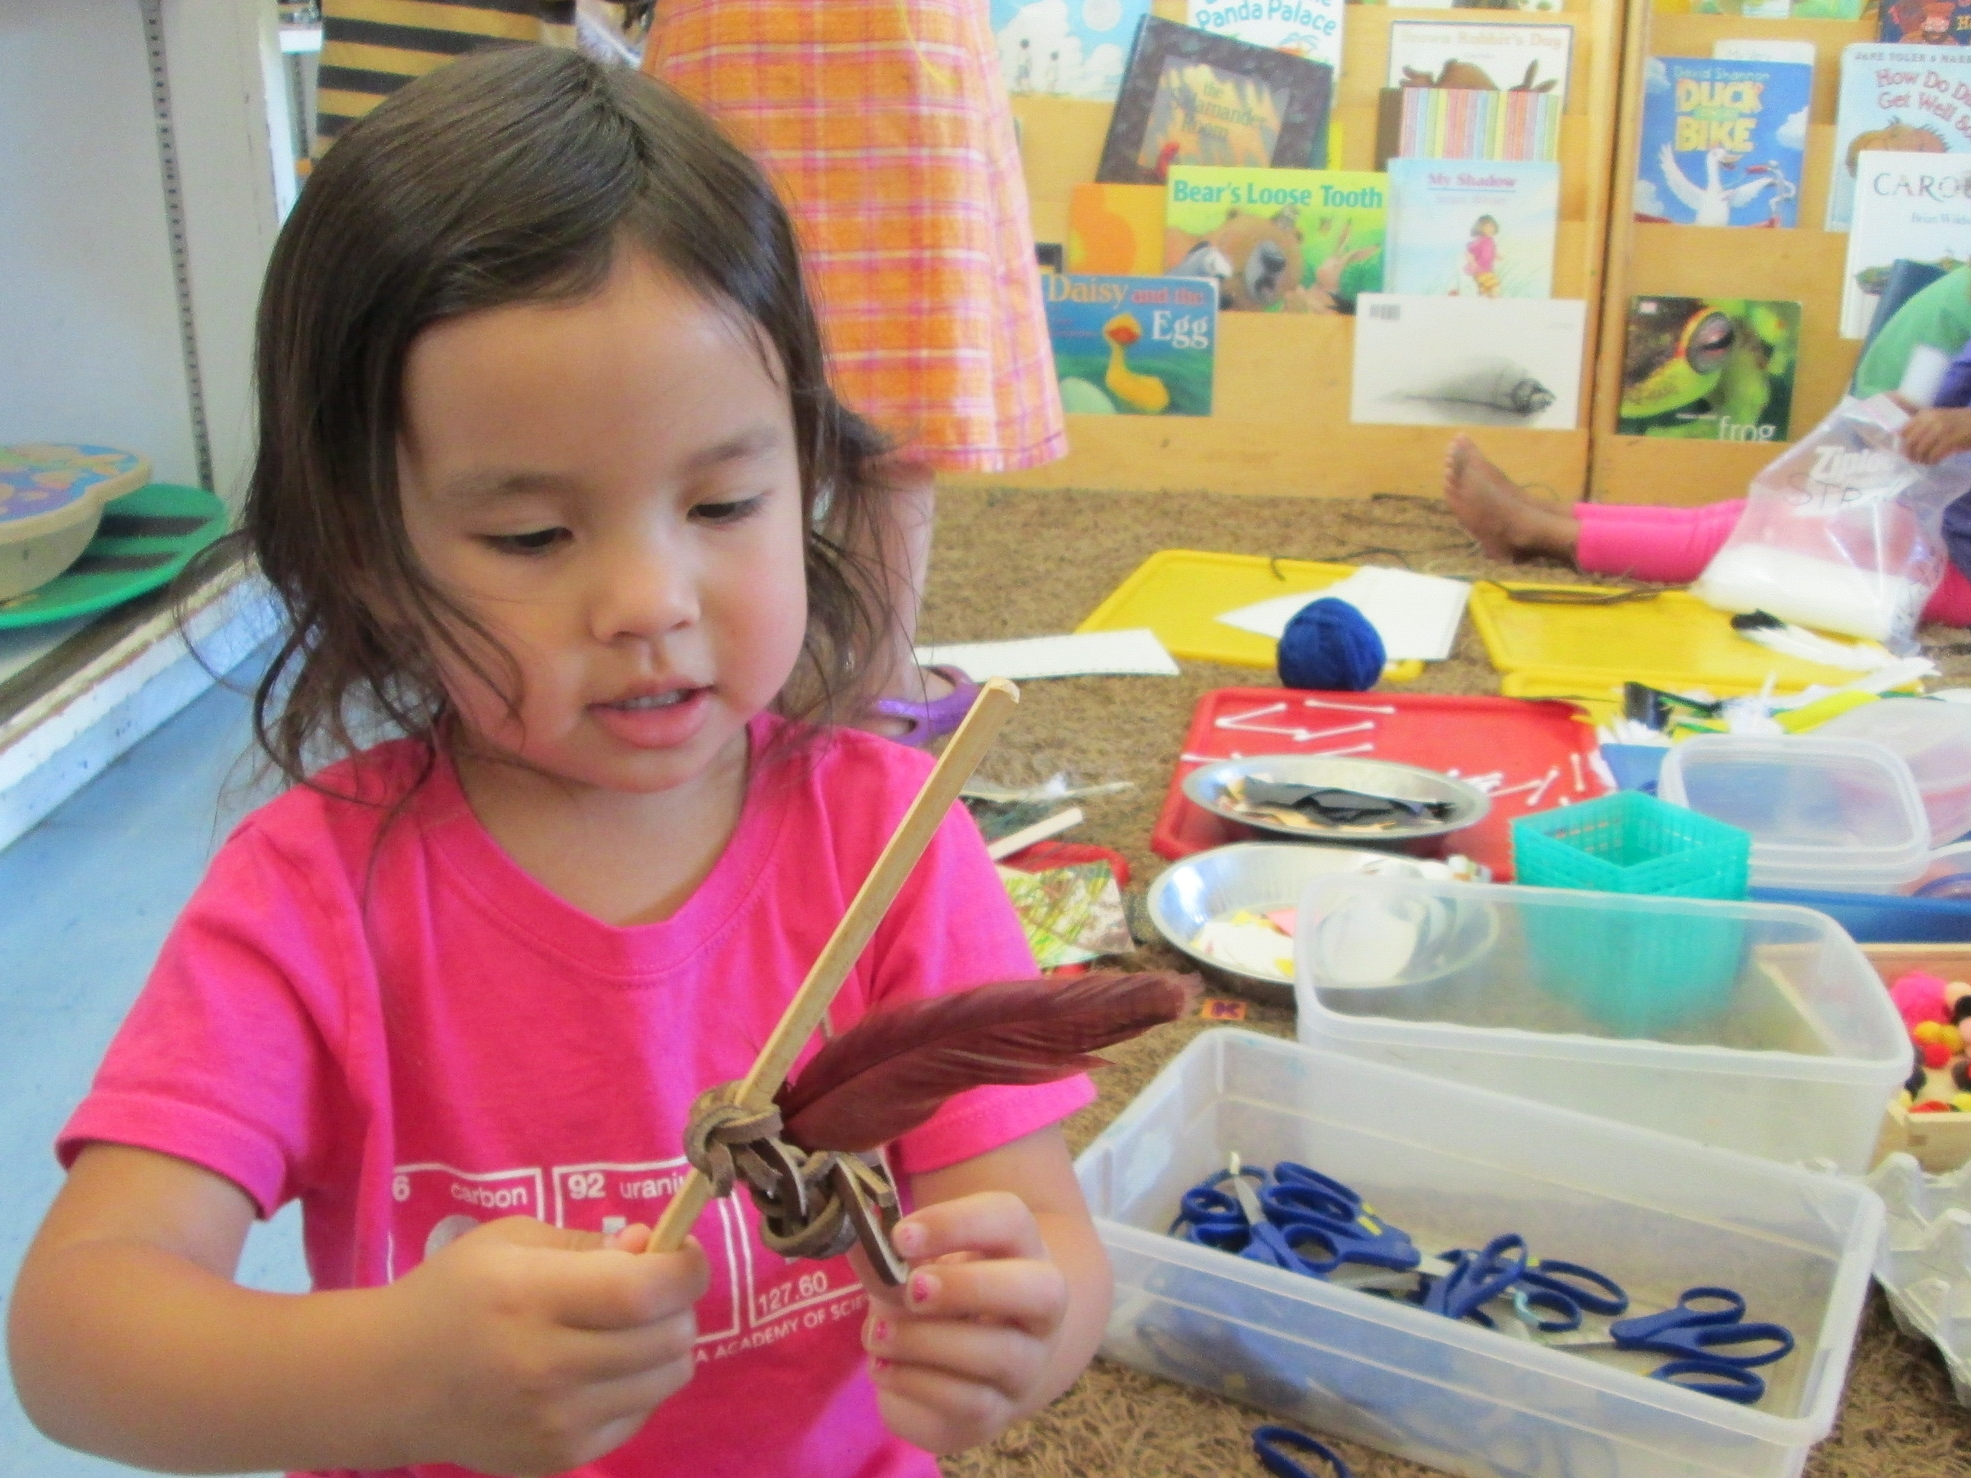 Martha challenged the children to see what new uses could be found for everyday objects and odds and ends.  They took the challenge pretty seriously: this is the next generation already at work.